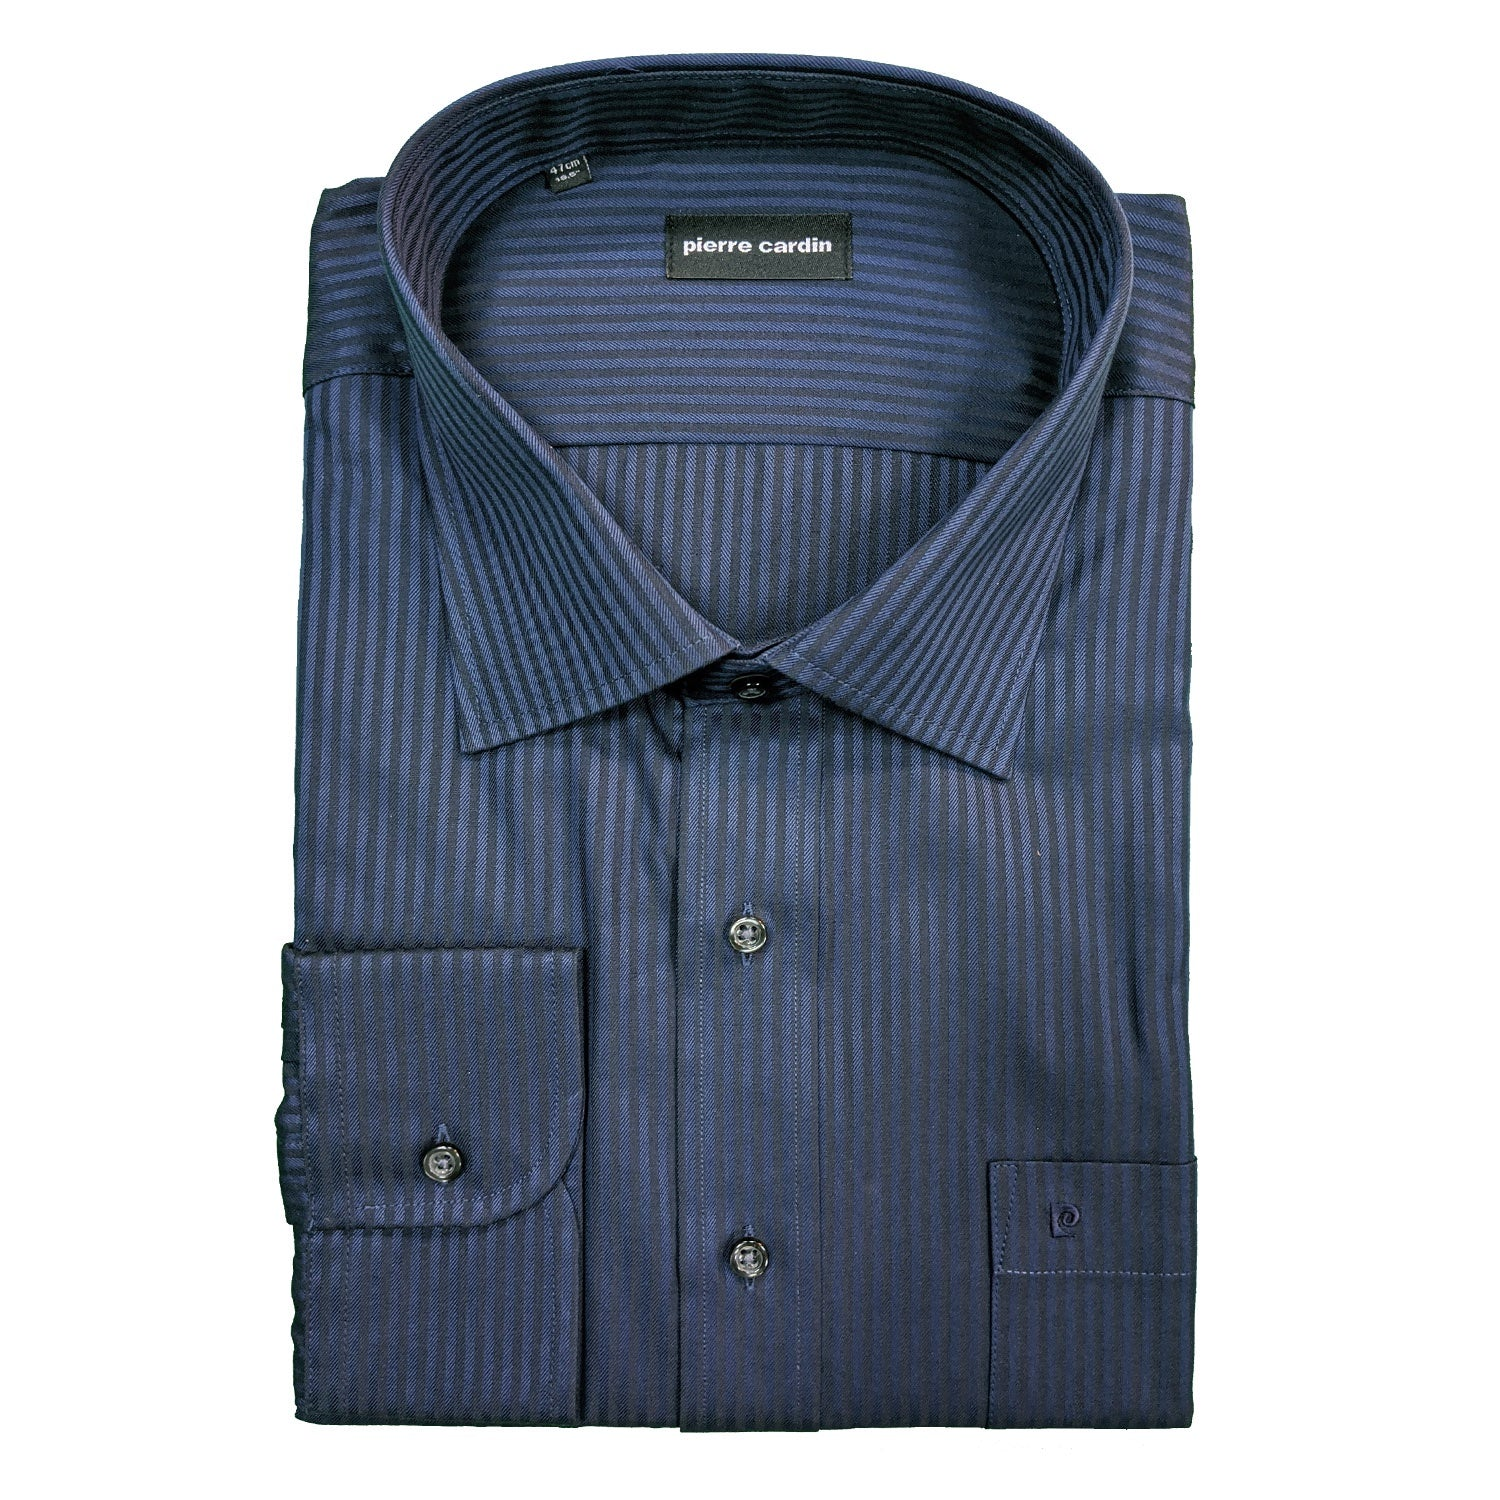 Pierre Cardin L/S Stripe Shirt - PC1809 - Navy 1